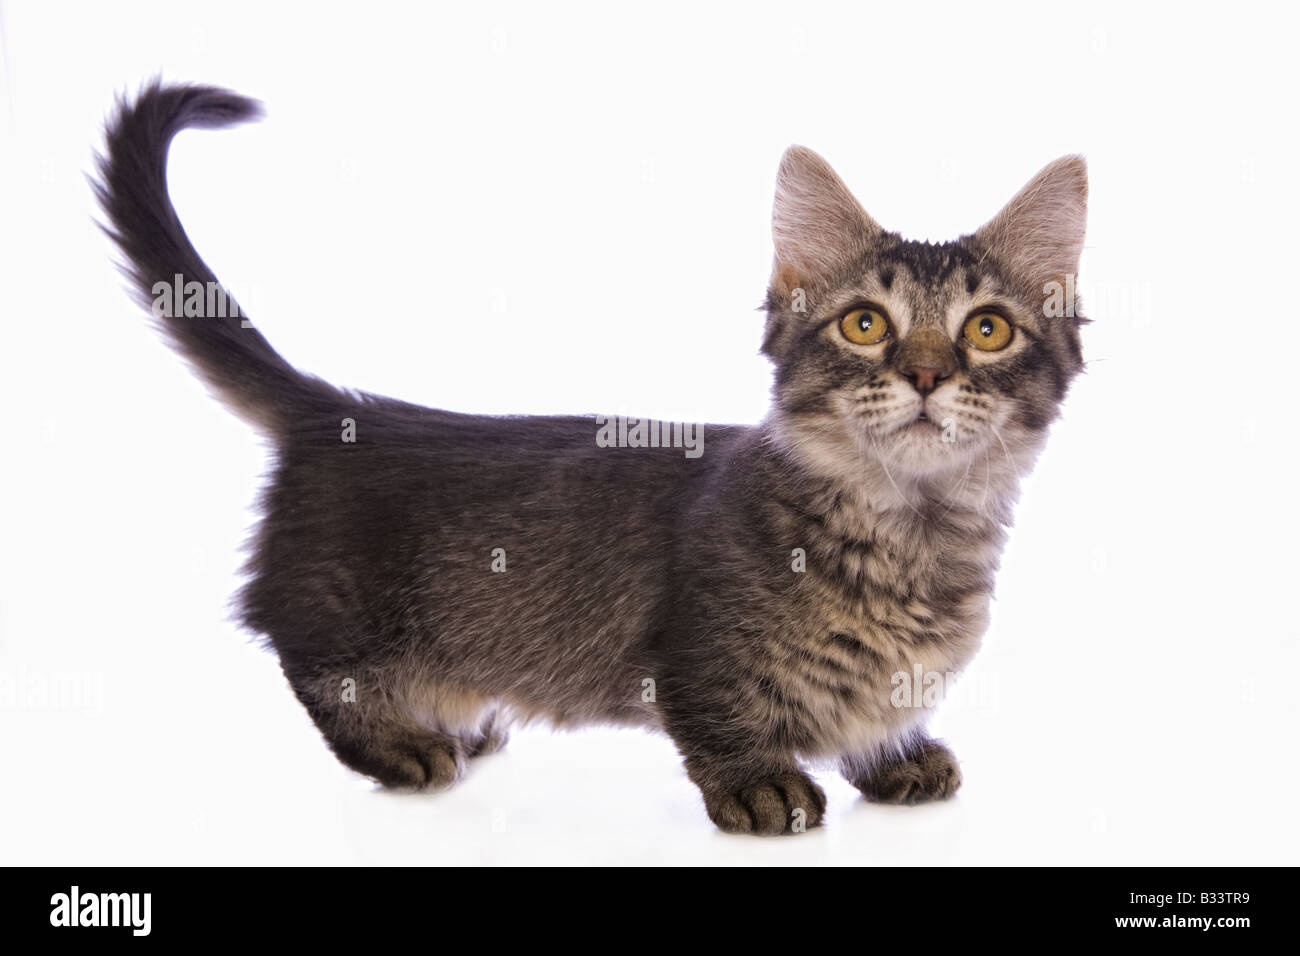 Cute tabby Munchkin cat with big gold eyes isolated on white background - Stock Image